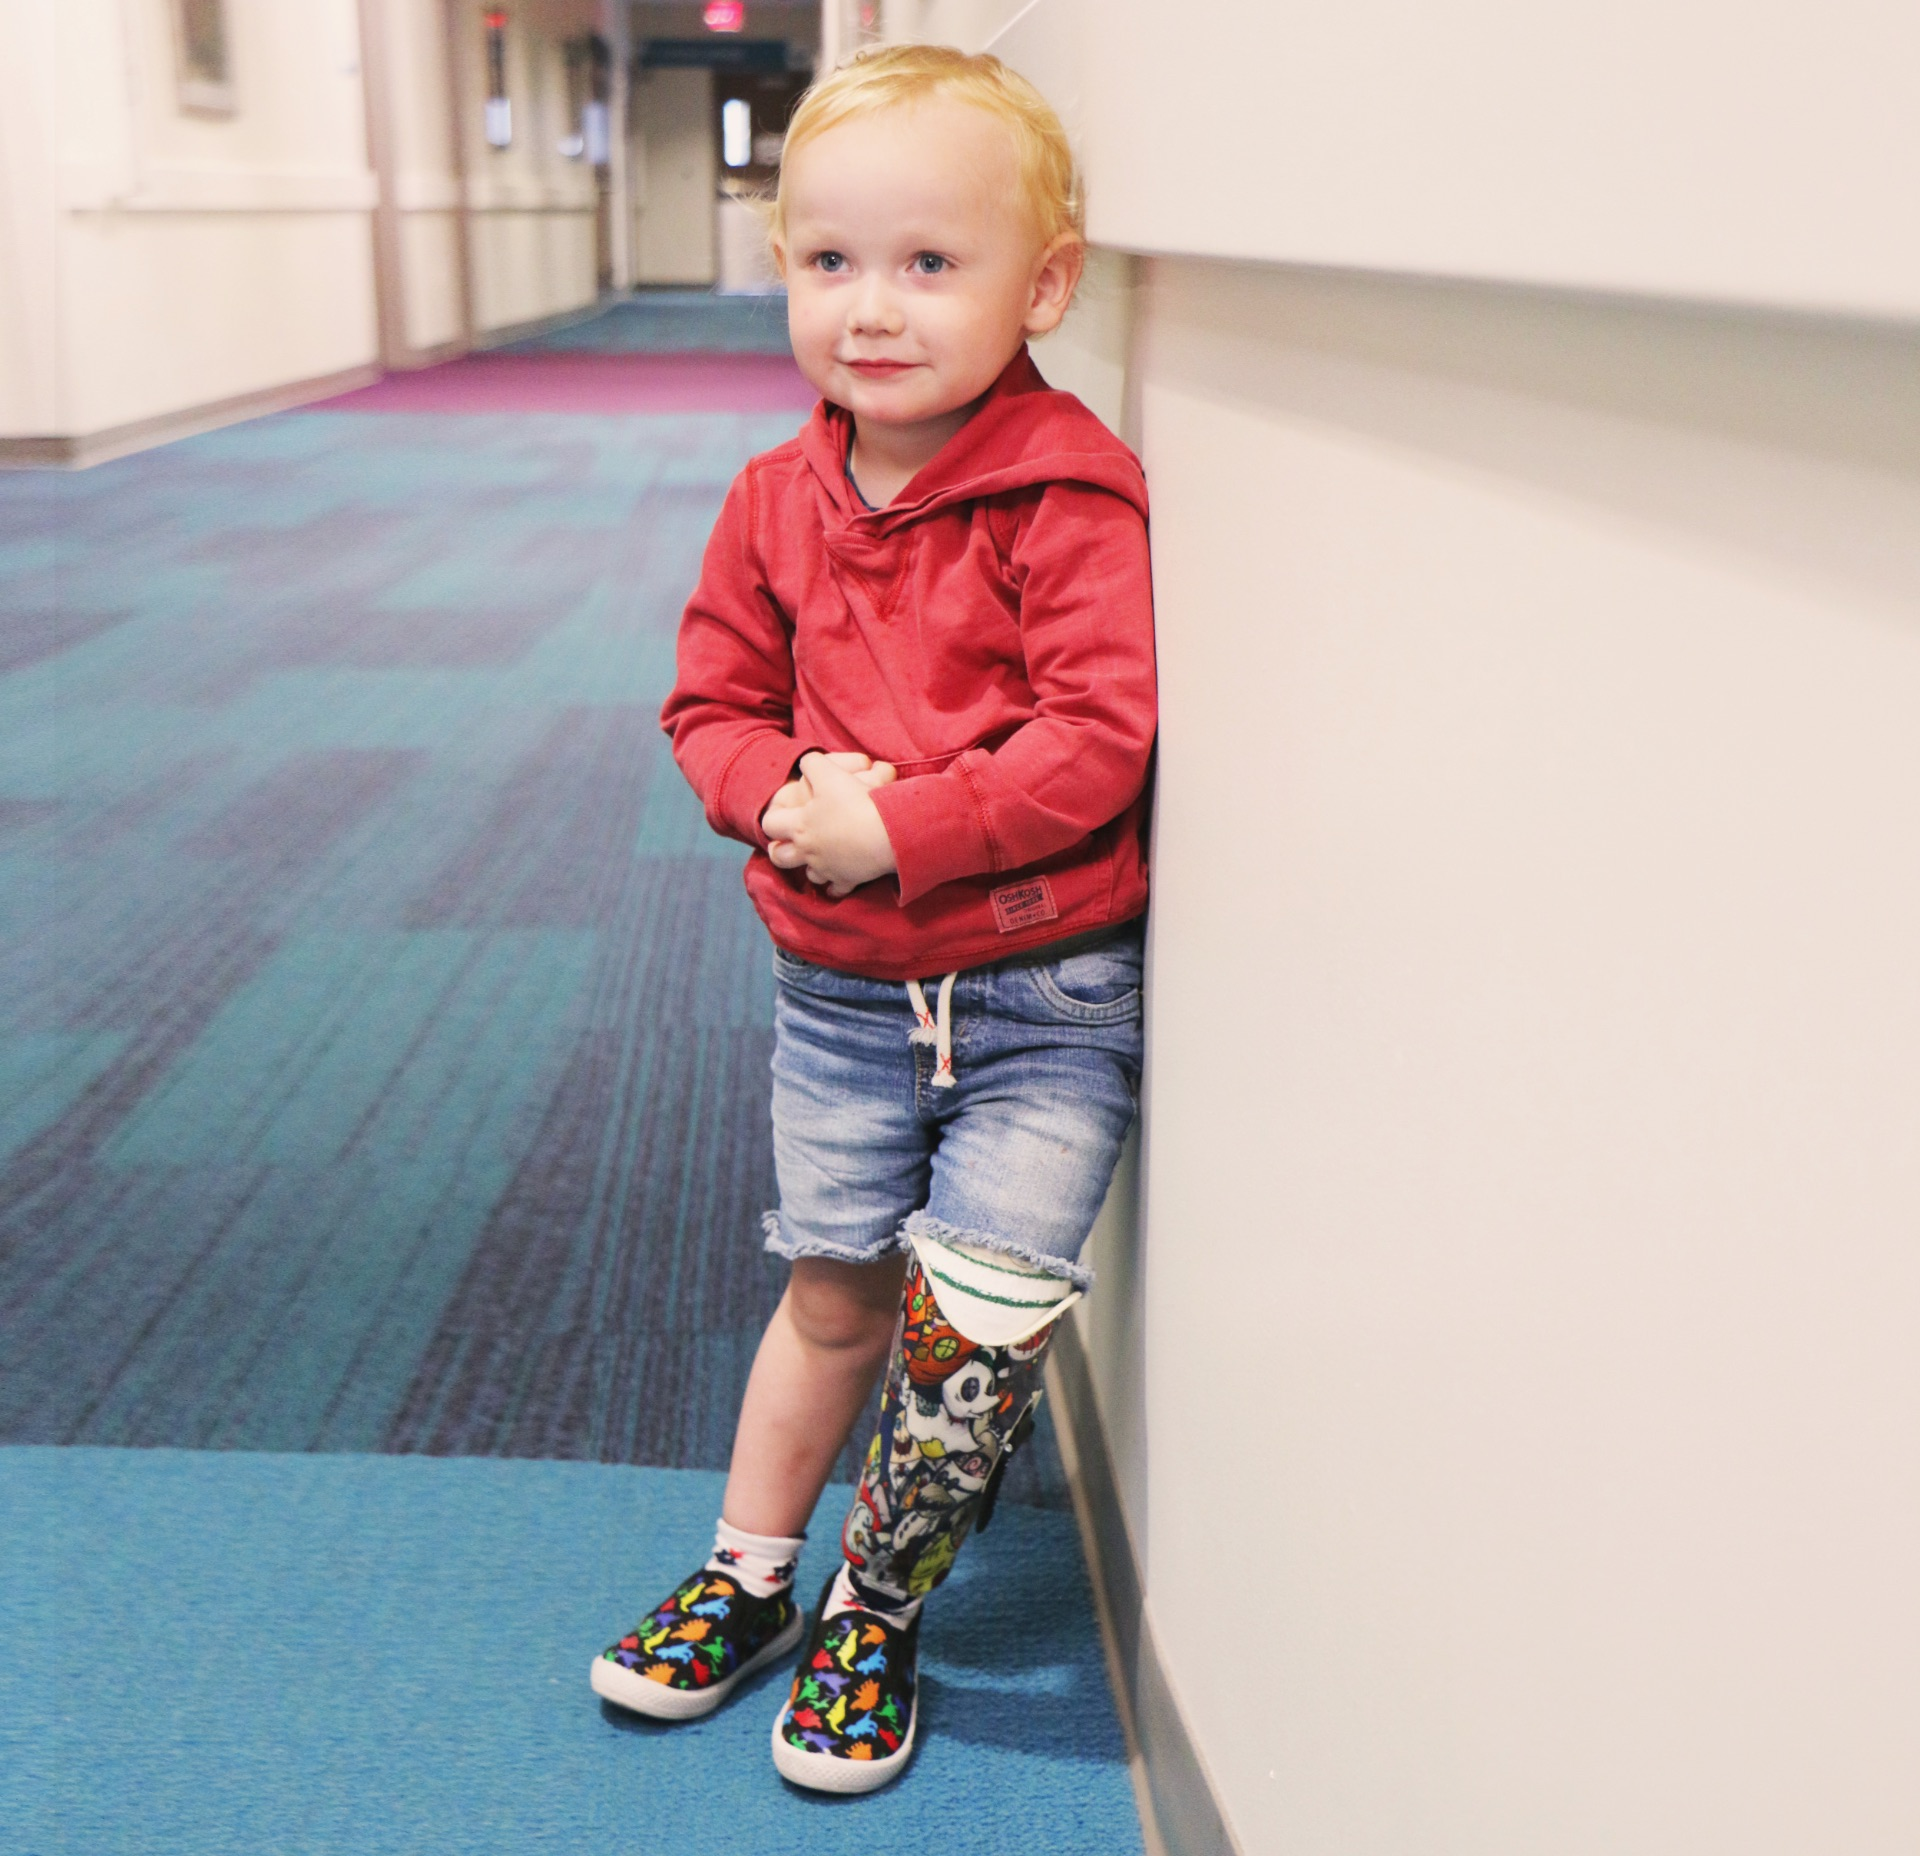 Arlo Yost leans against the wall of a hallway and smiles for the camera, with his prosthetic proudly visible.